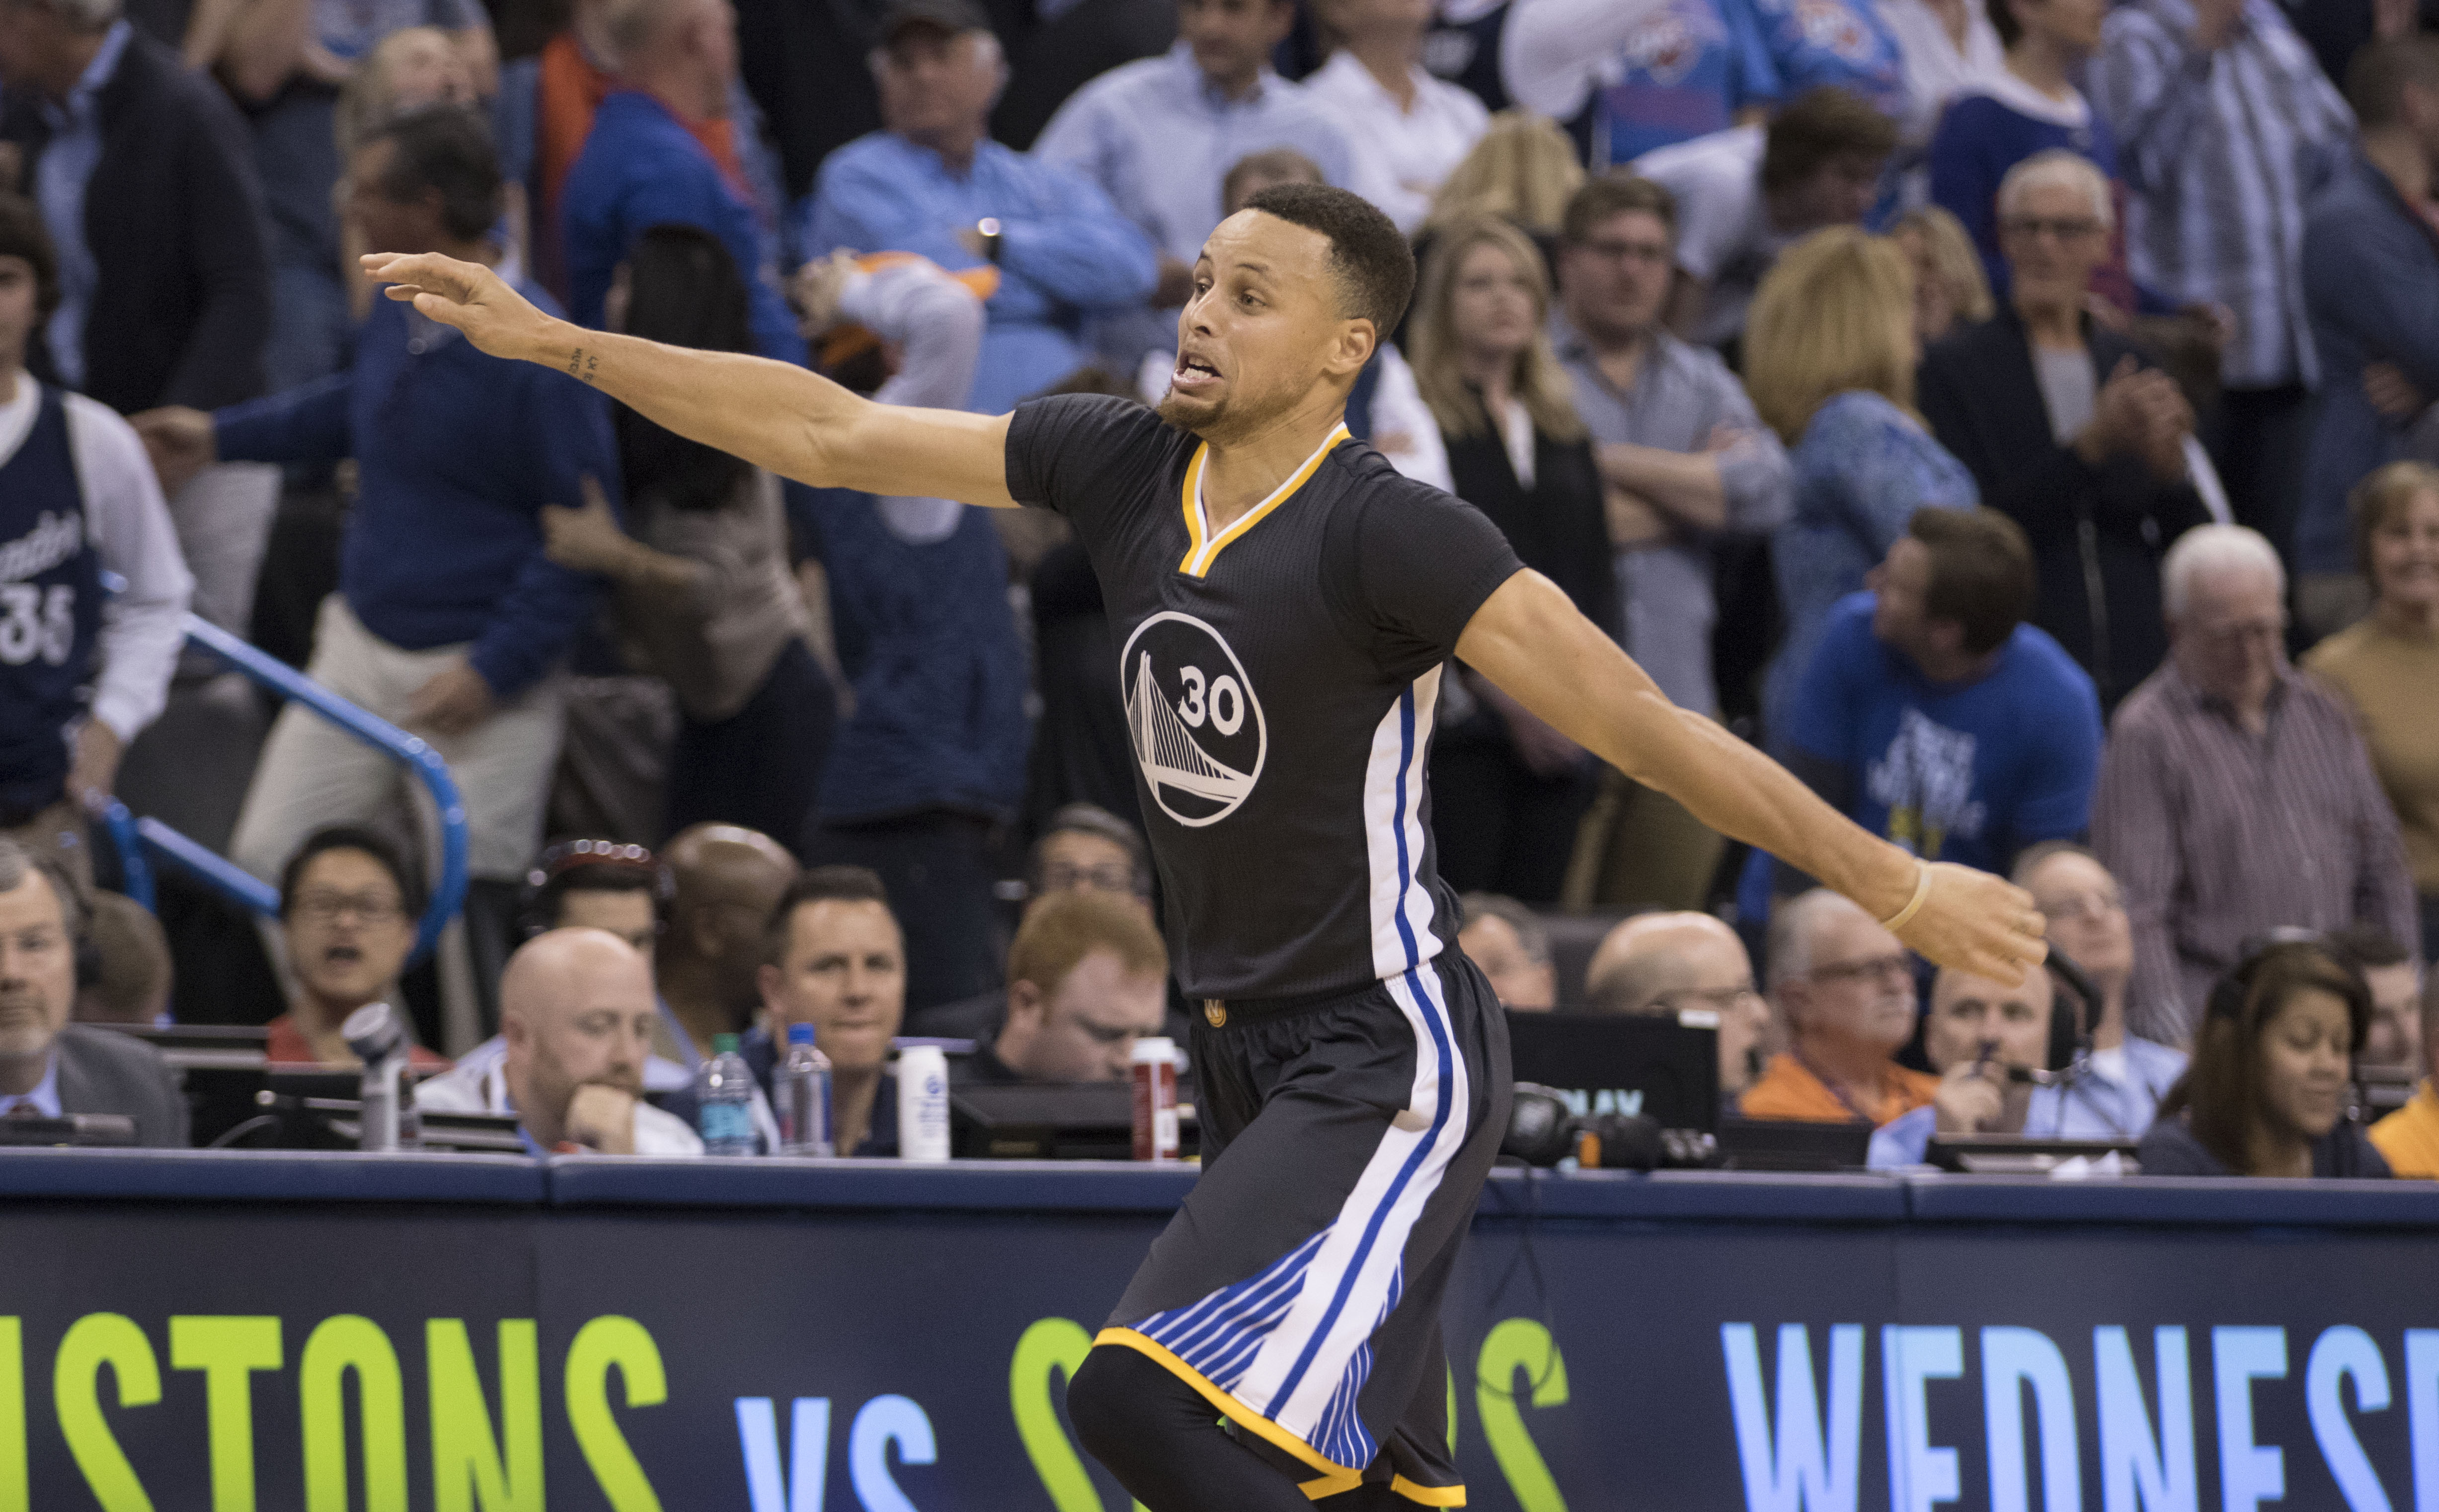 OKLAHOMA CITY, OK - FEBRUARY 27: After scoring the winning three-point shot Stephen Curry #30 of the Golden State Warriors celebrates during the overtime period of a NBA game against the Oklahoma City Thunder at the Chesapeake Energy Arena on February 27,